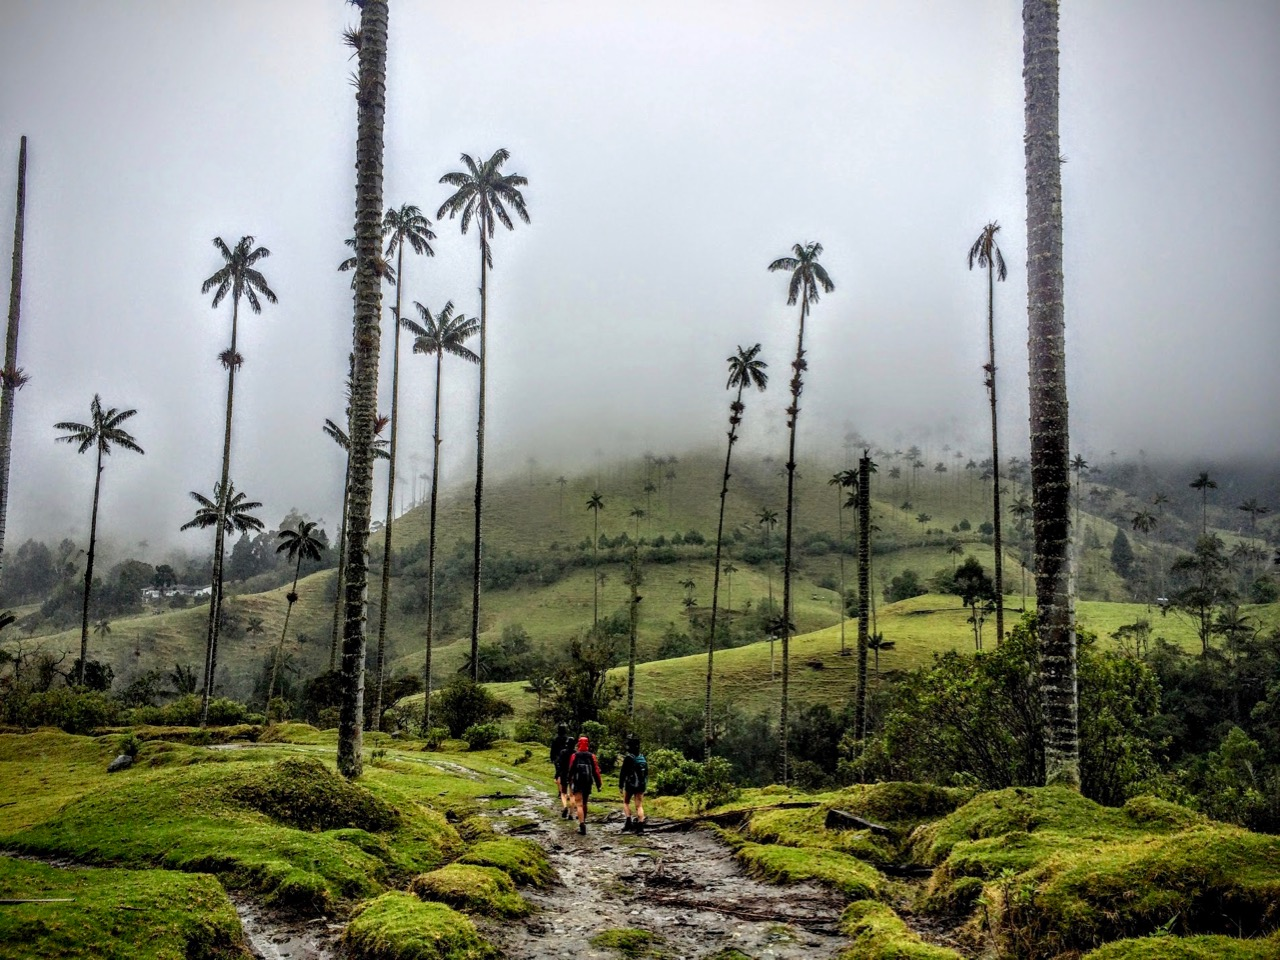 Hiking in Cocoa Valley in Colombia before my ACL surgery recovery